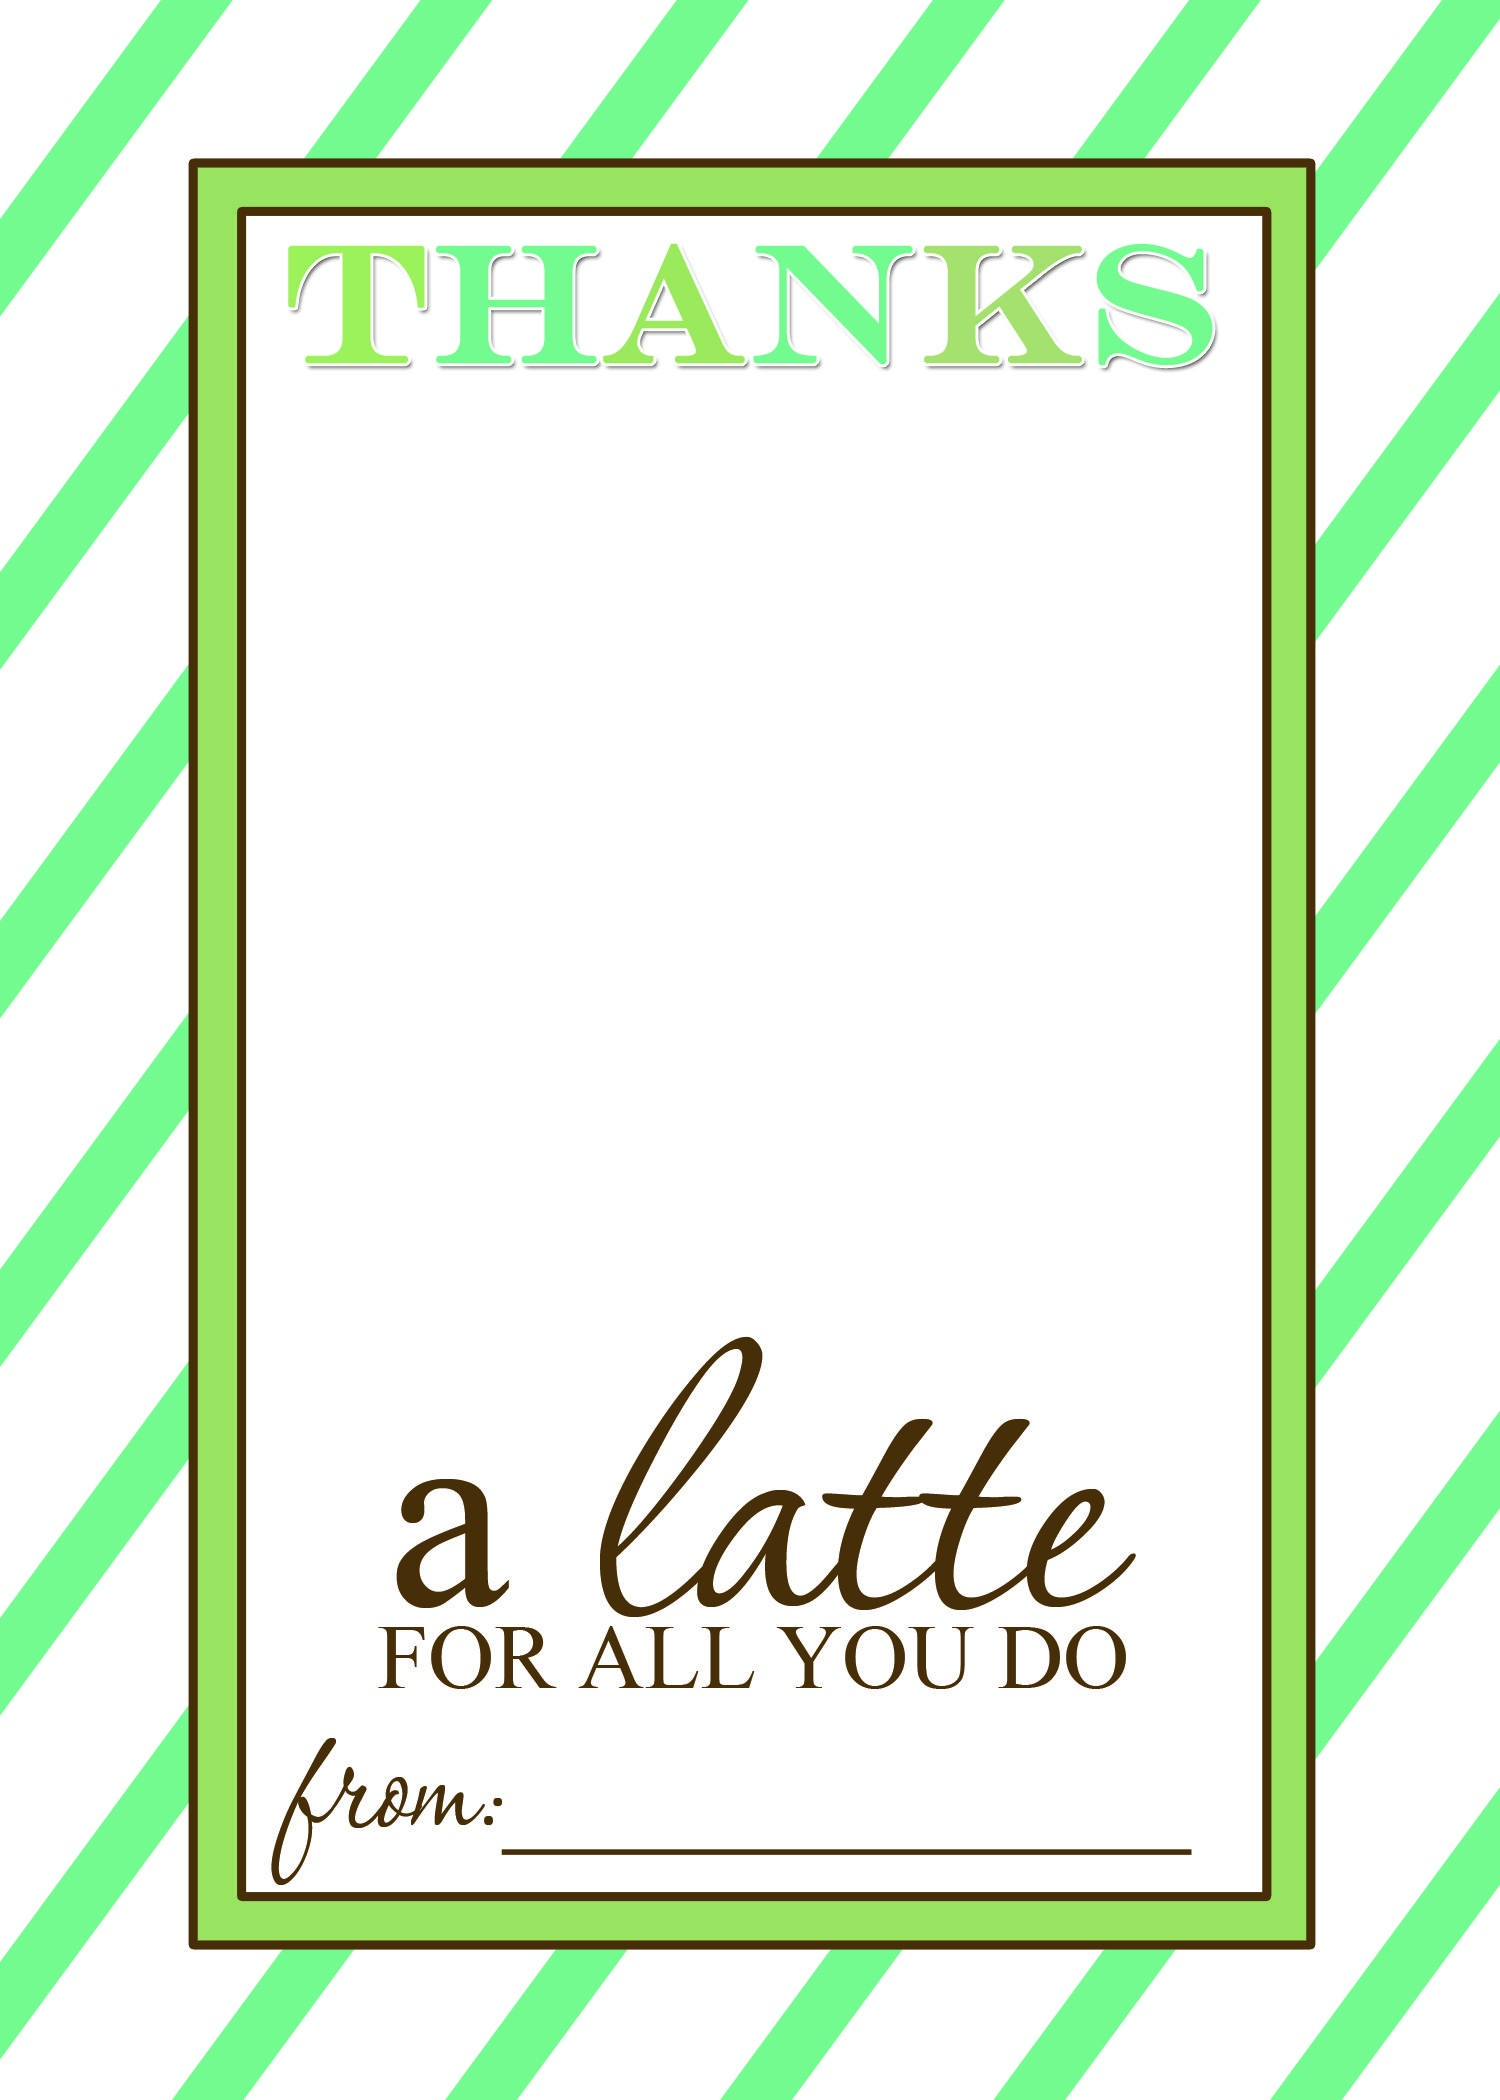 Thanks A Latte Free Printable Gift Card Holder Teacher Gift | Craft - Thanks A Latte Free Printable Card